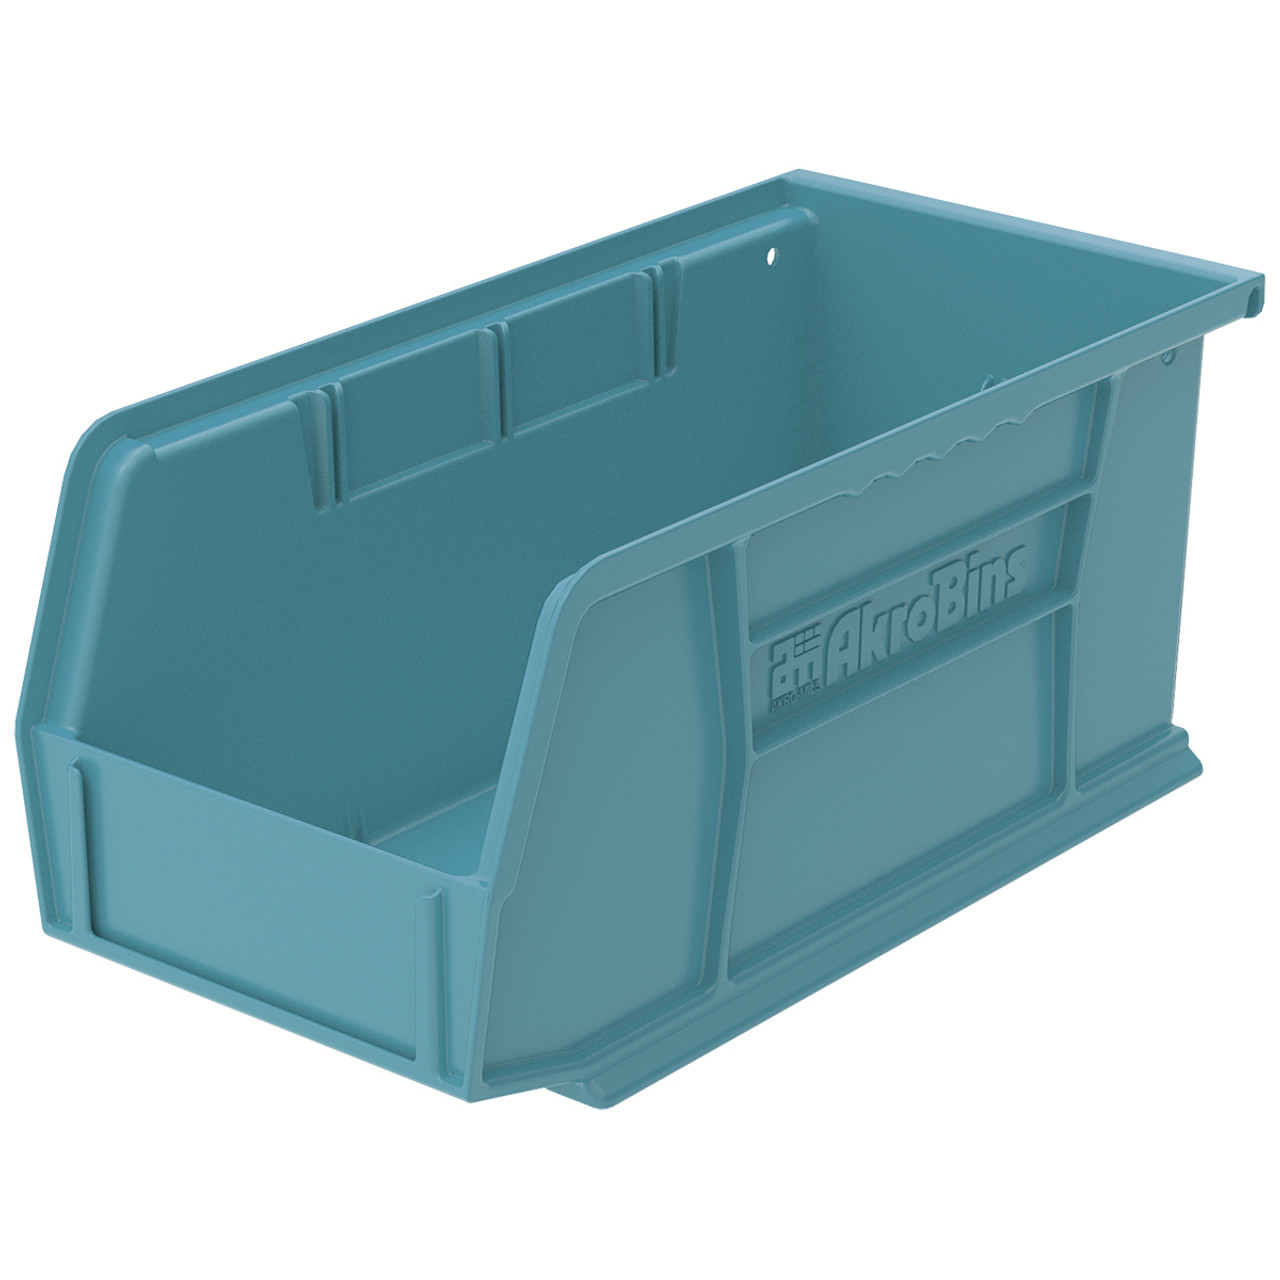 Bin, AkroBin 10-7/8 x 5-1/2 x 5, Light Blue  30230LTBLU